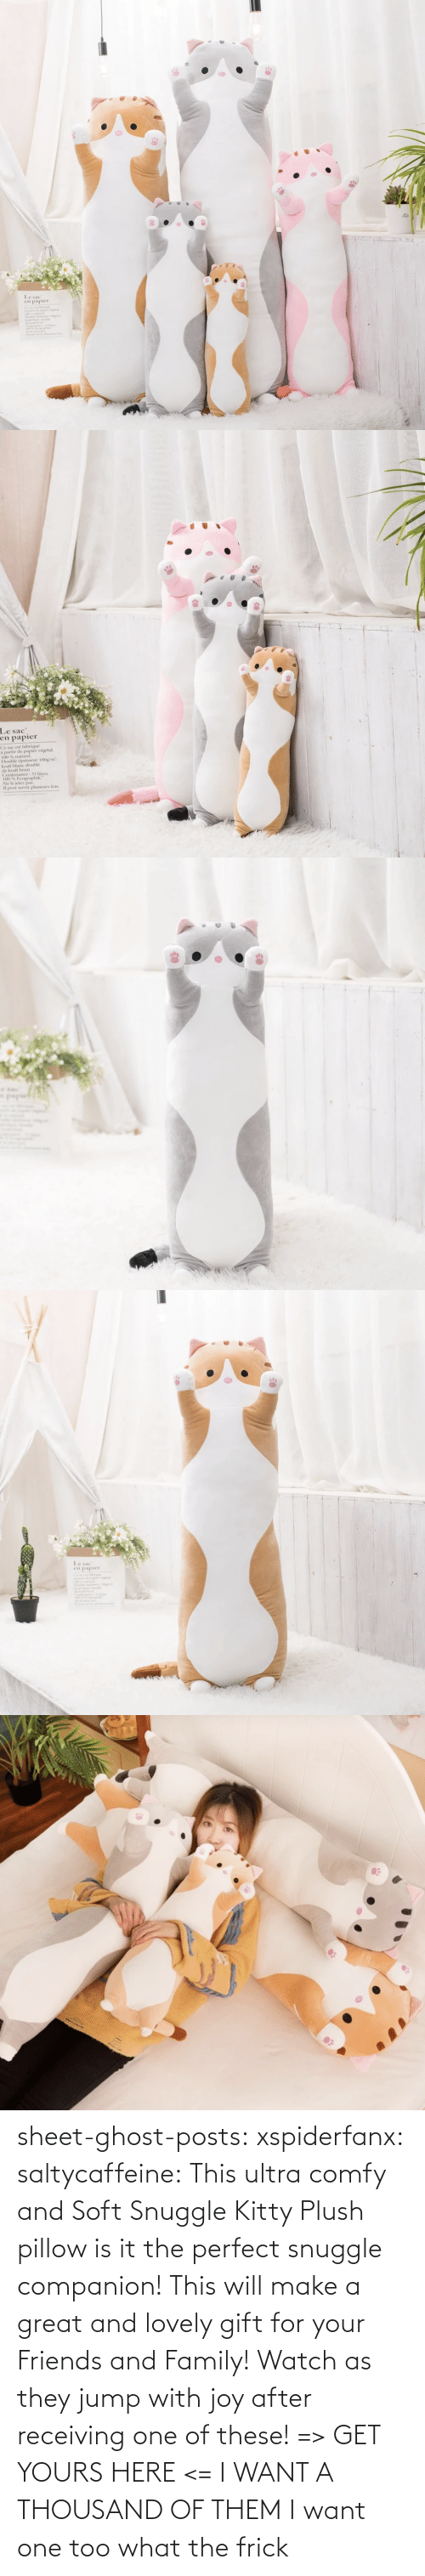 Family, Frick, and Friends: sheet-ghost-posts: xspiderfanx:  saltycaffeine:  This ultra comfy and Soft Snuggle Kitty Plush pillow is it the perfect snuggle companion! This will make a great and lovely gift for your Friends and Family! Watch as they jump with joy after receiving one of these! => GET YOURS HERE <=    I WANT A THOUSAND OF THEM  I want one too what the frick